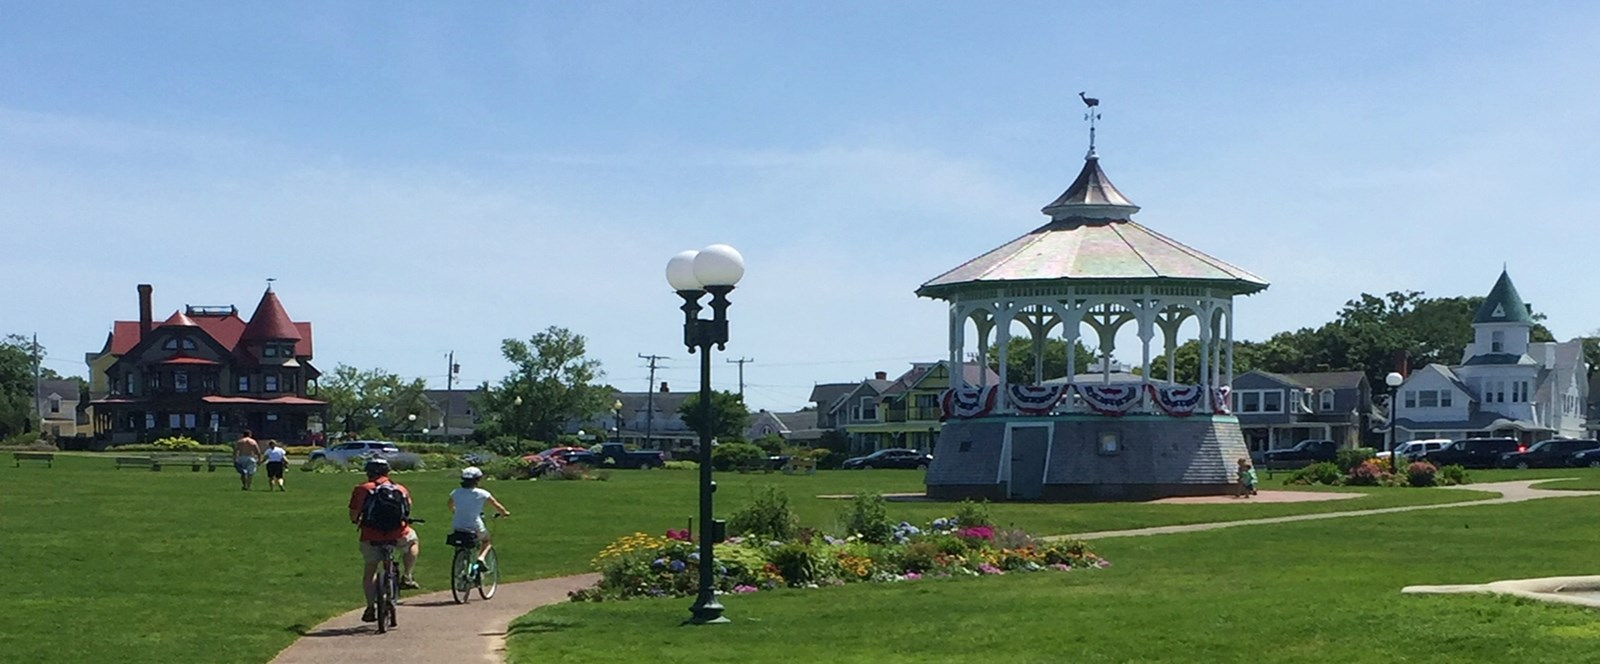 A day in Oak Bluffs: While there I photographed a studio vacation rental, ate clam chowder, relaxed at Ocean Park, and visited the Flying Horse carousel.